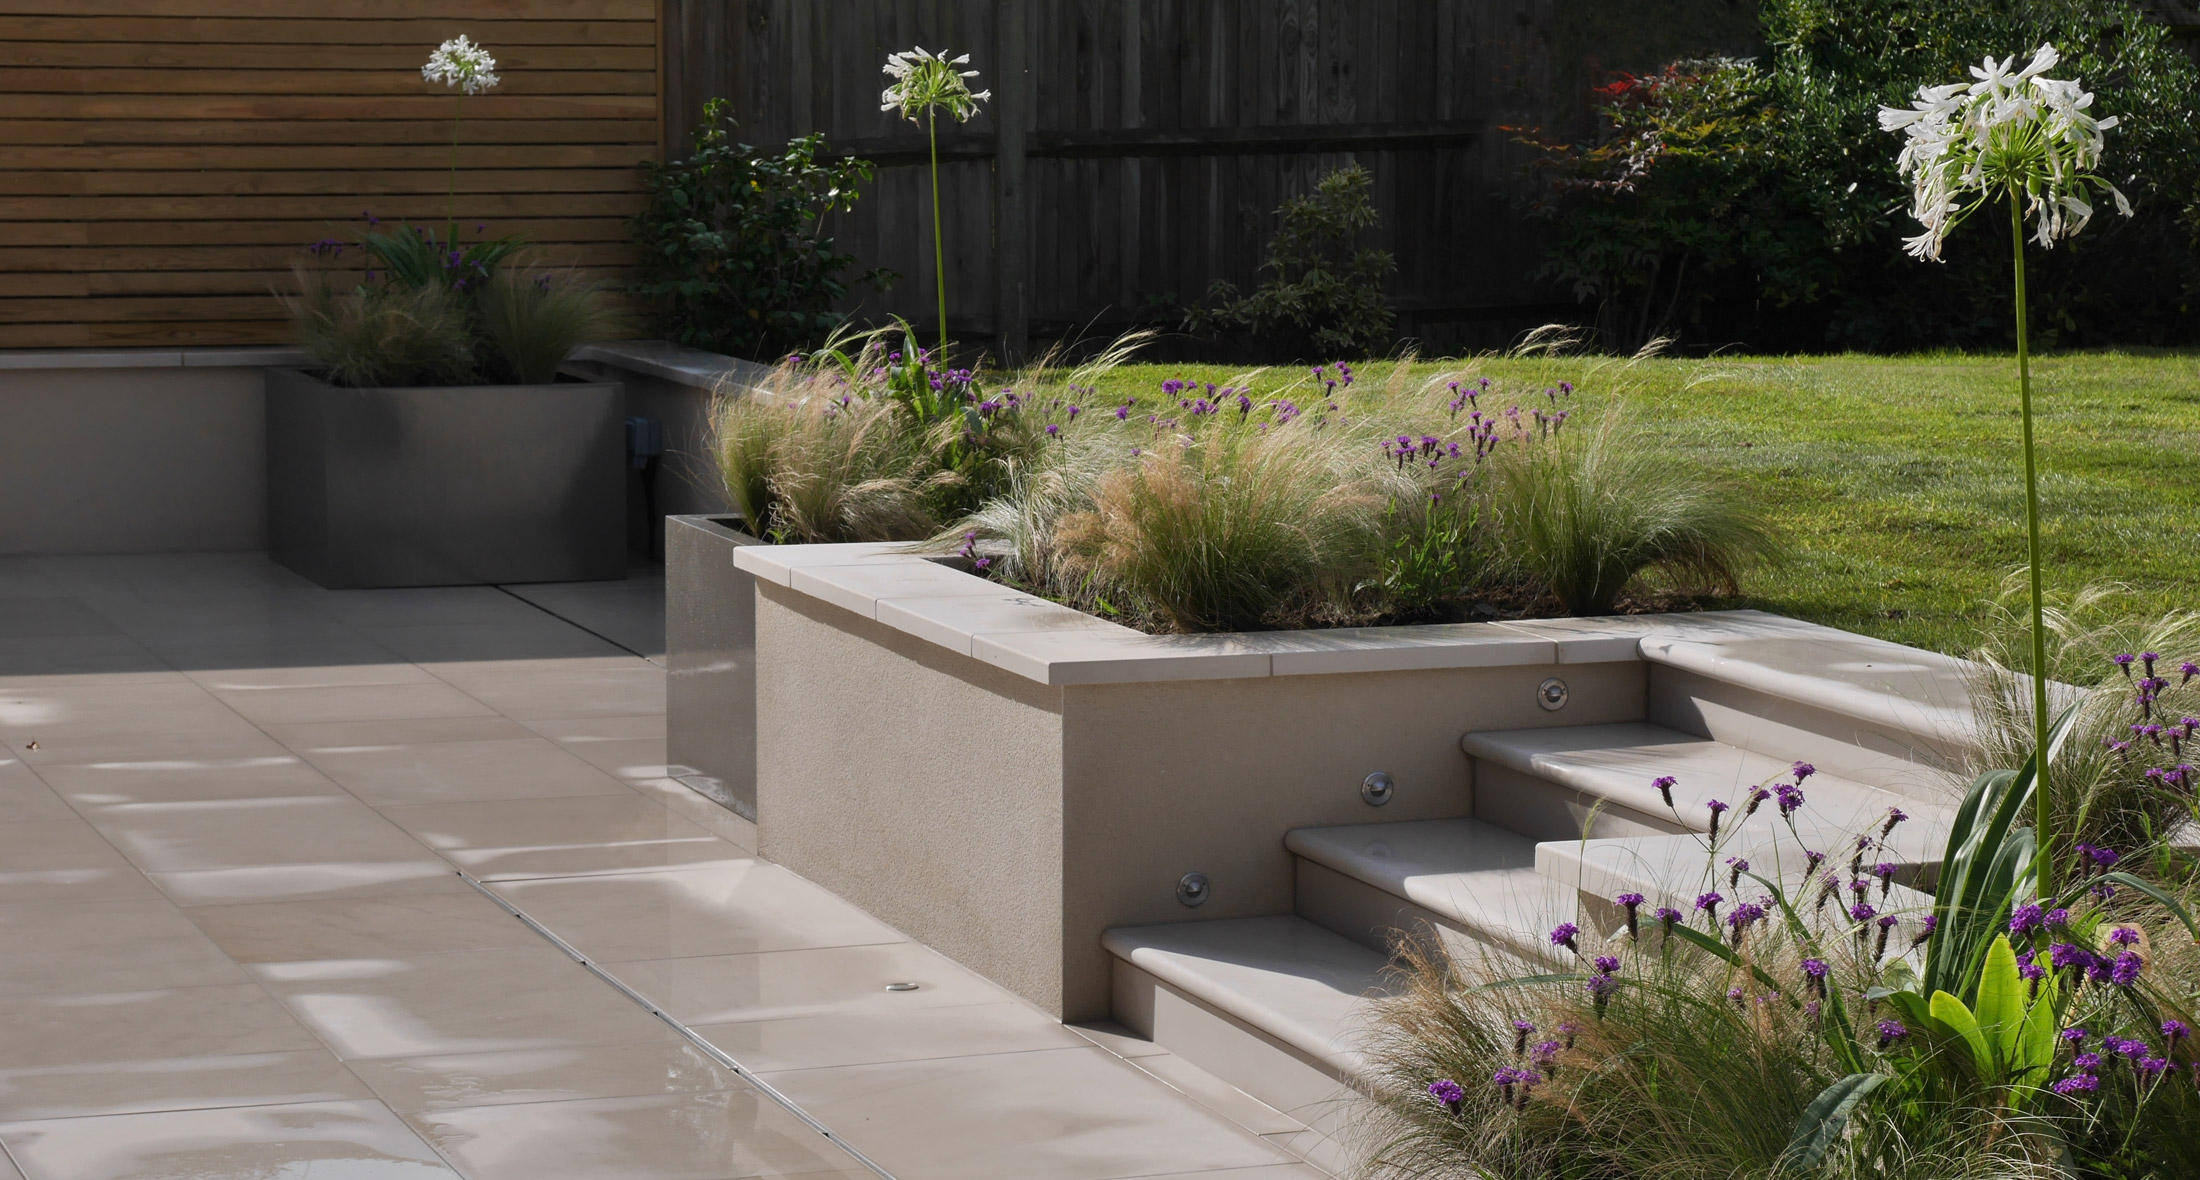 a slate grey garden design landscaping patio showing raised edging and containers - Garden Design Uk